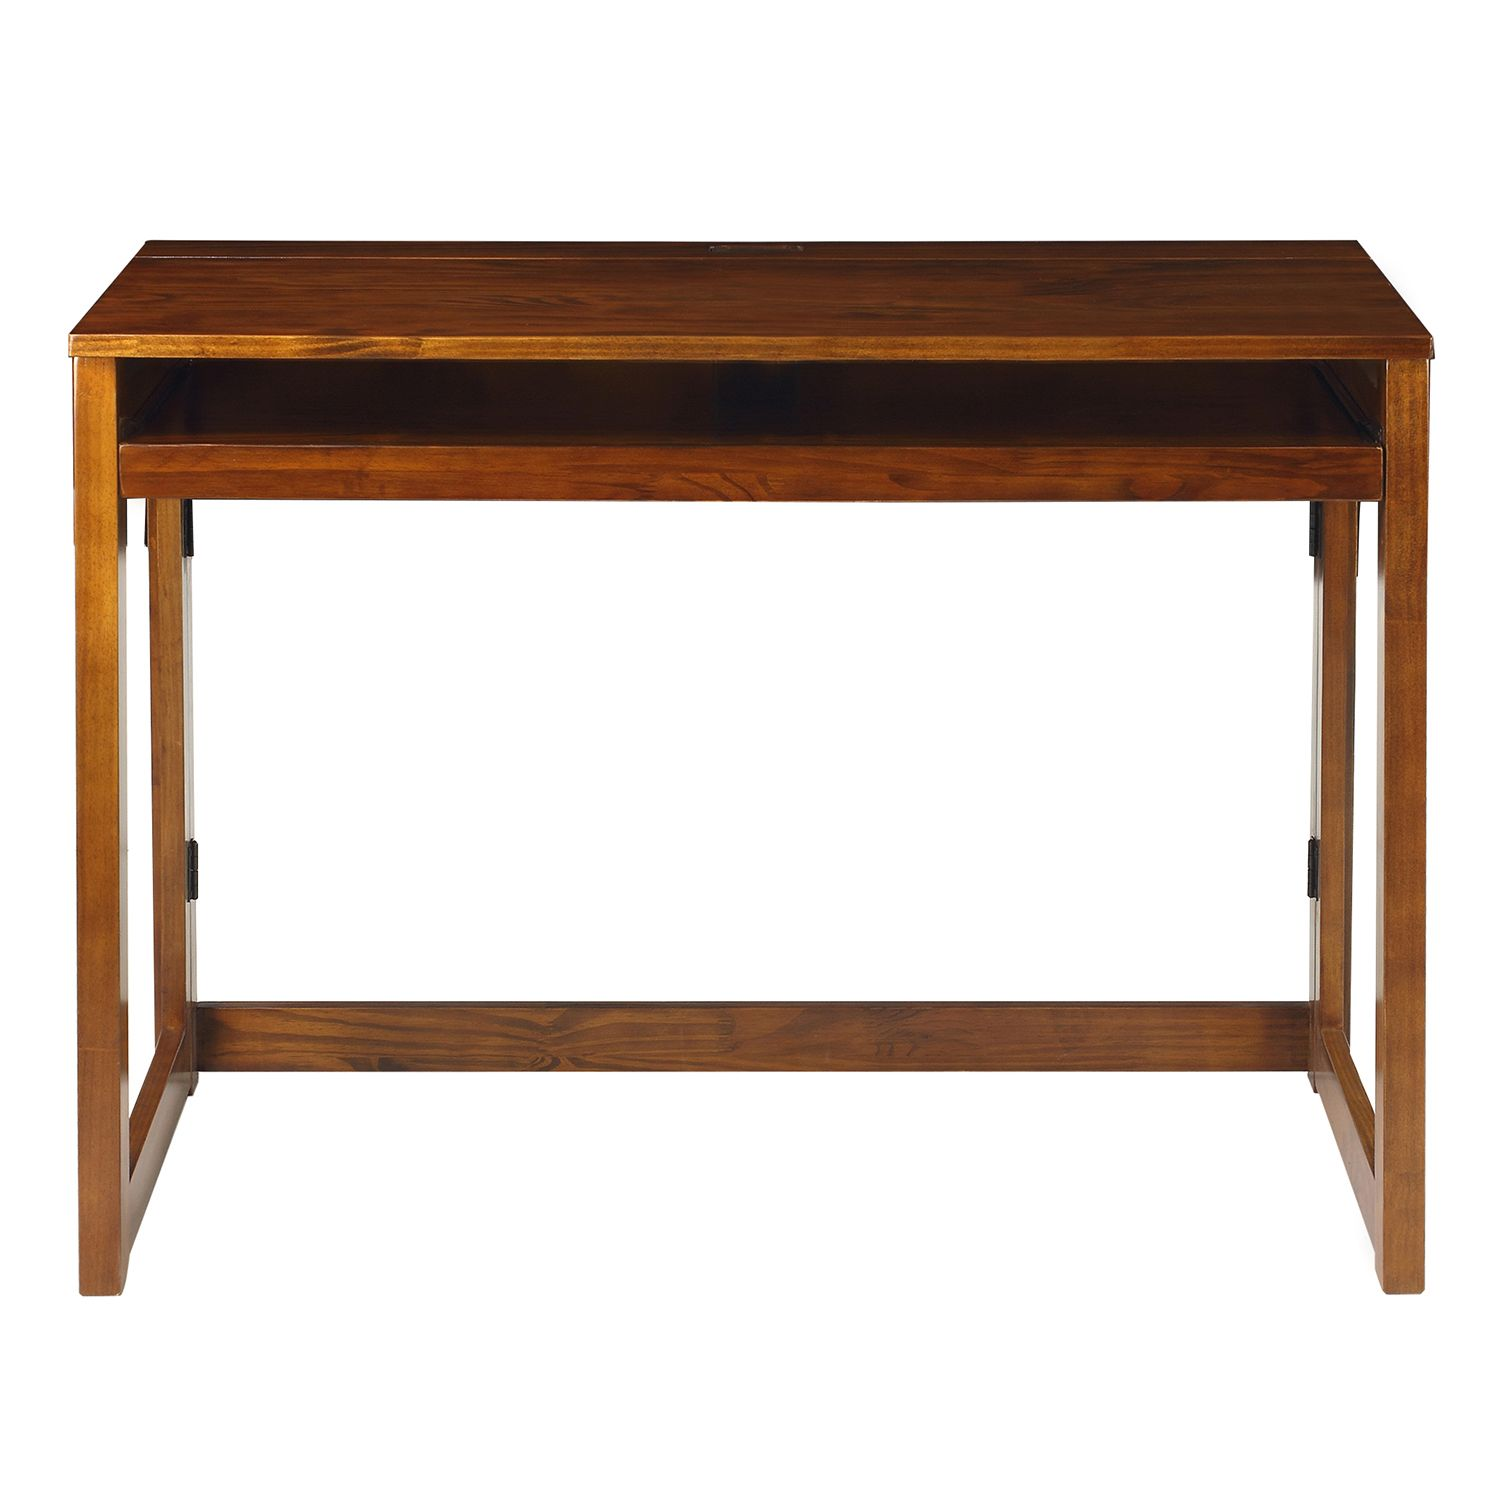 Attractive Casual Home Folding Desk With USB Port